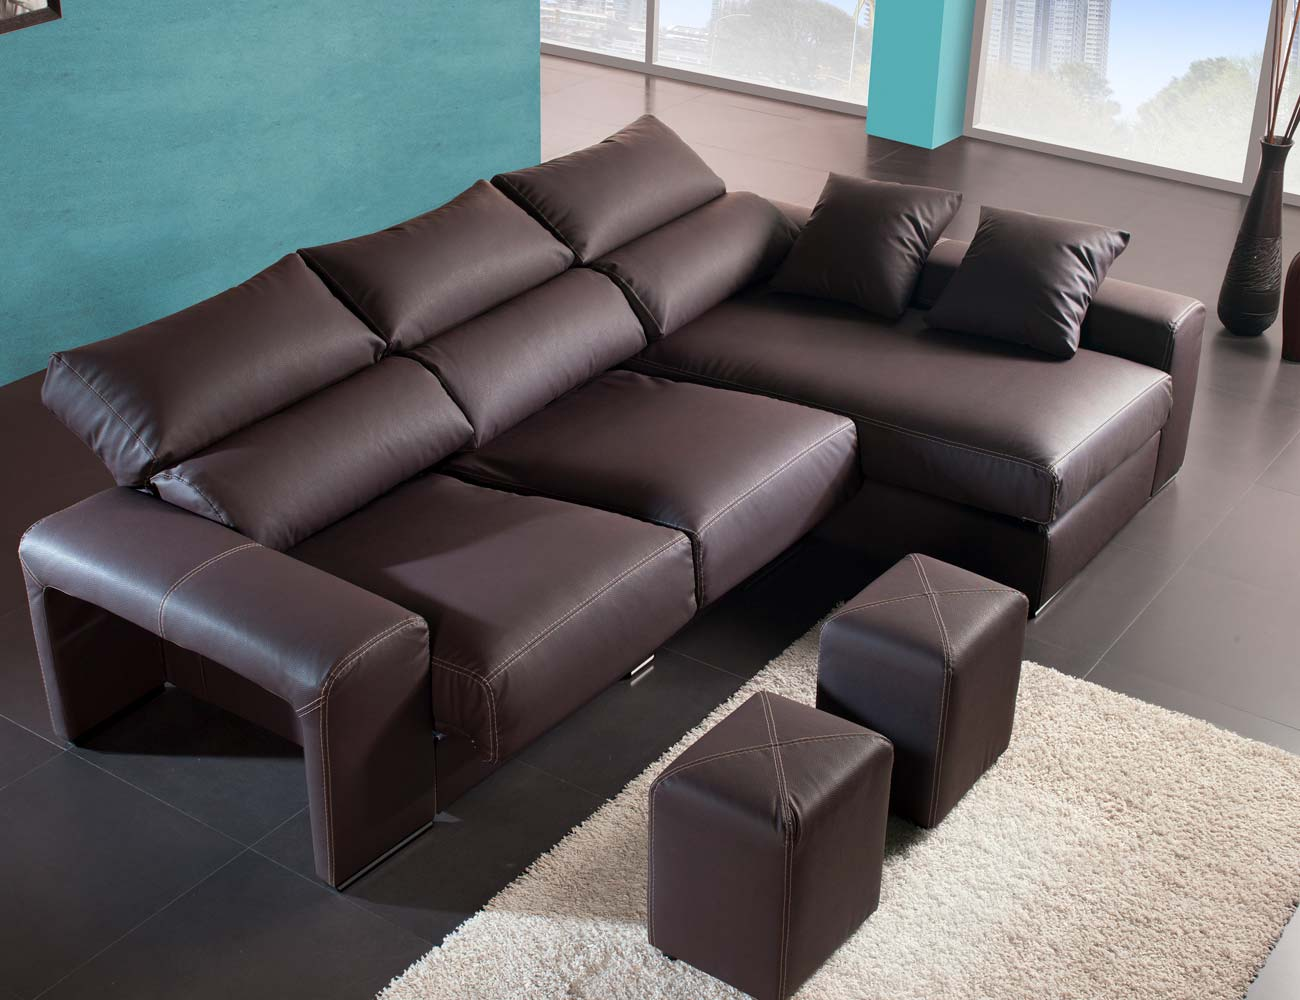 Sofa chaiselongue moderno polipiel chocolate poufs taburetes45